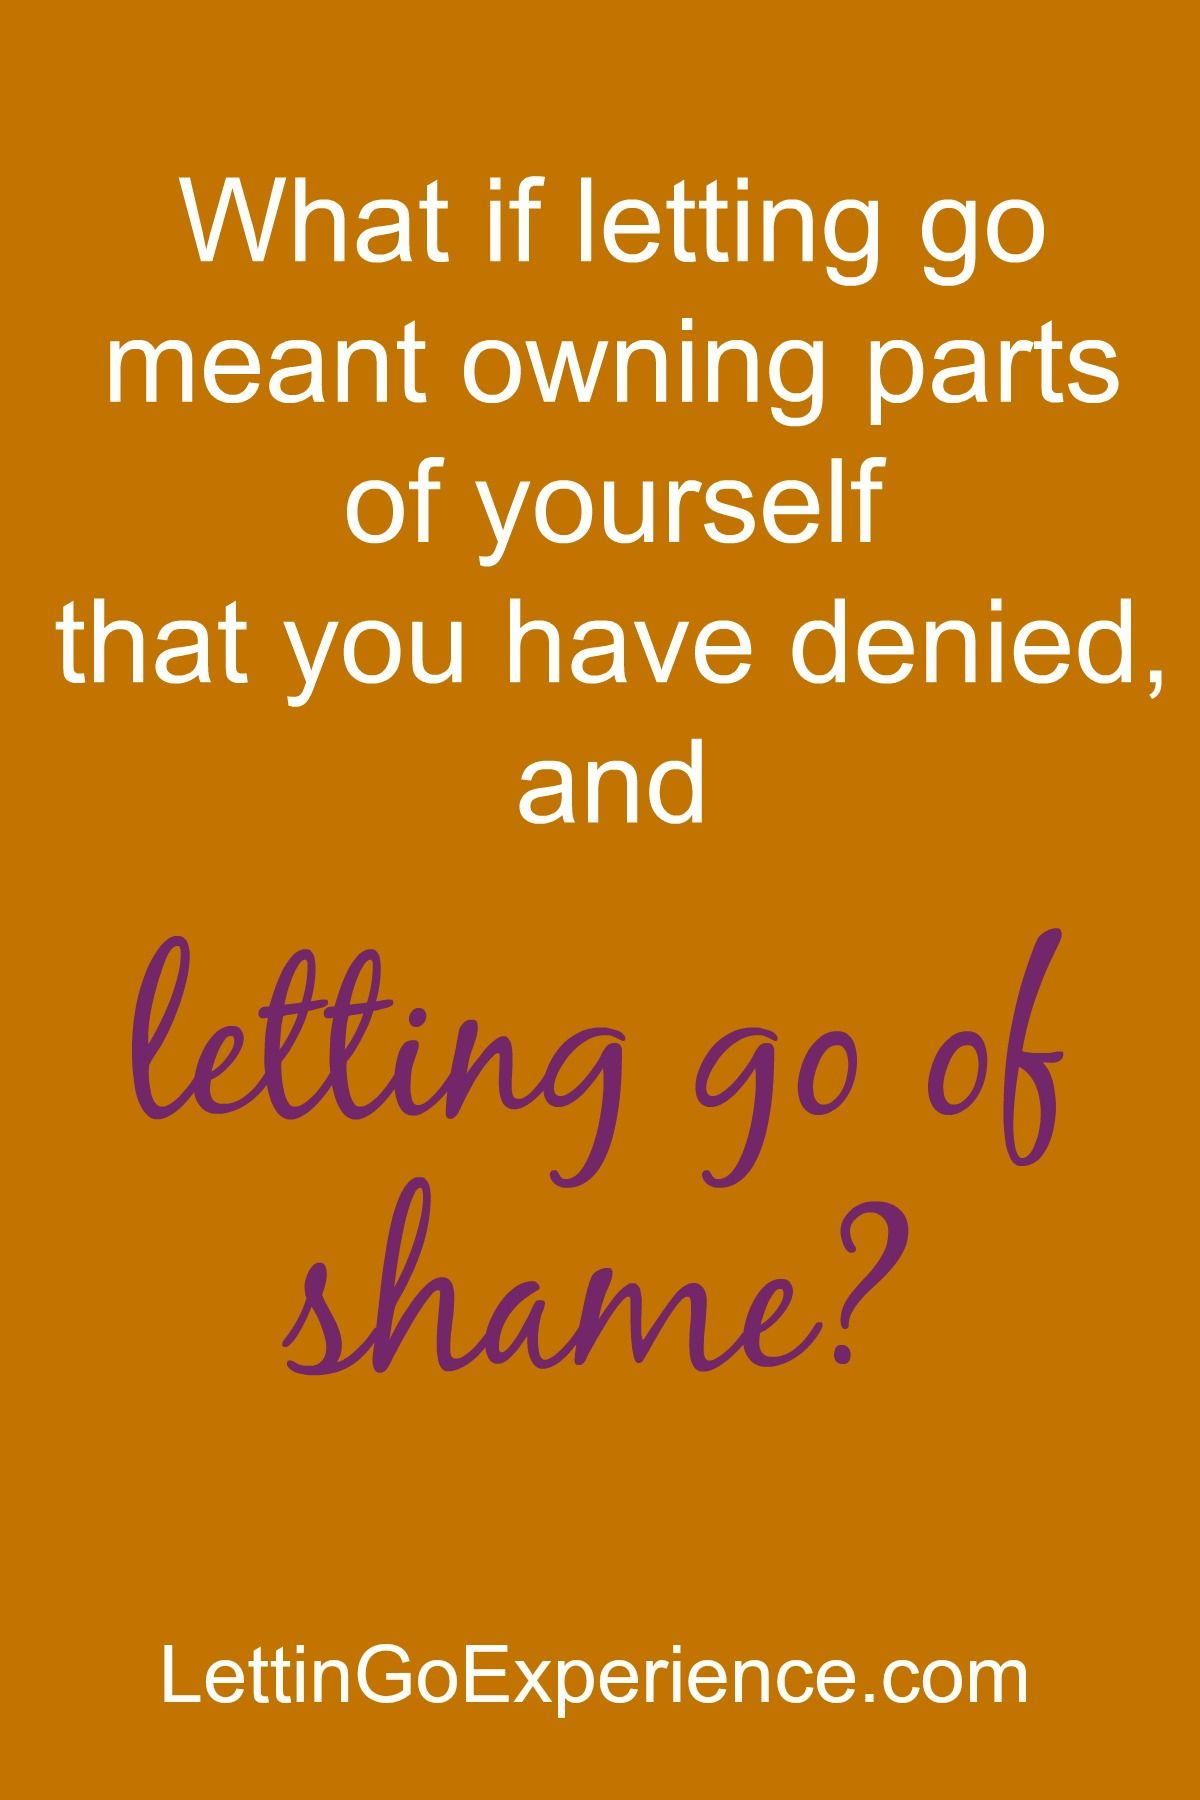 guilt and shame quotes quotesgram